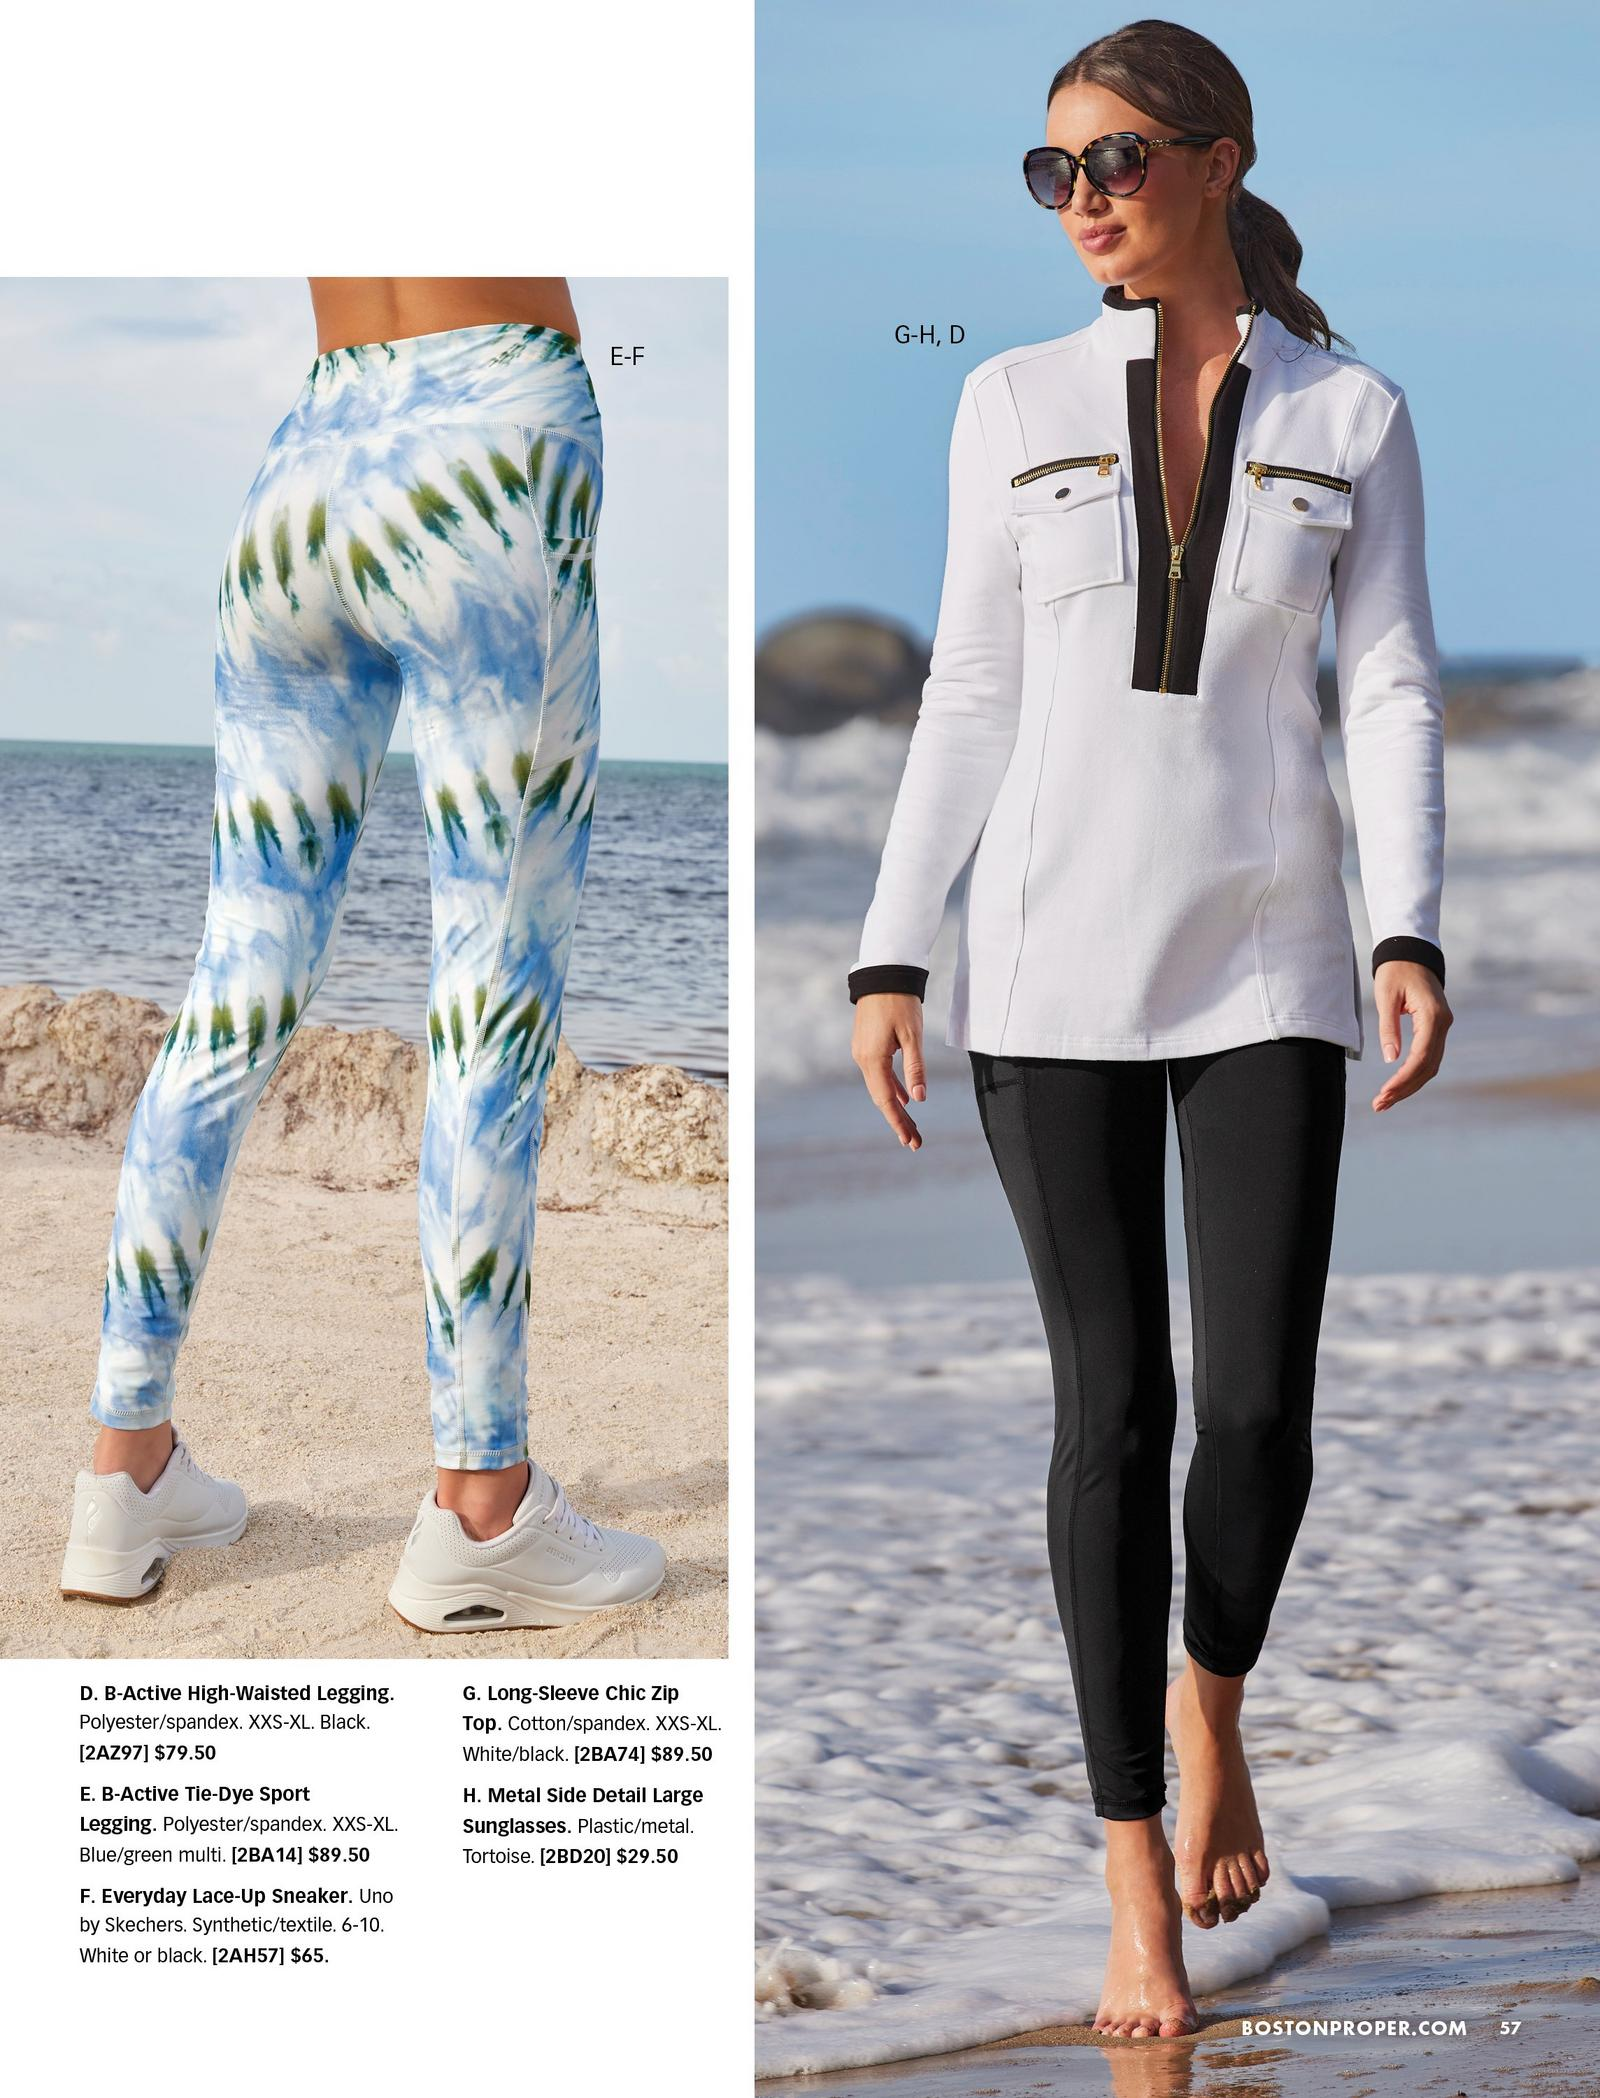 left model wearing blue, white, and green tie-dye leggings and white sneakers. right model wearing a white and black zipper long-sleeve sport top, black leggings, and sunglasses.